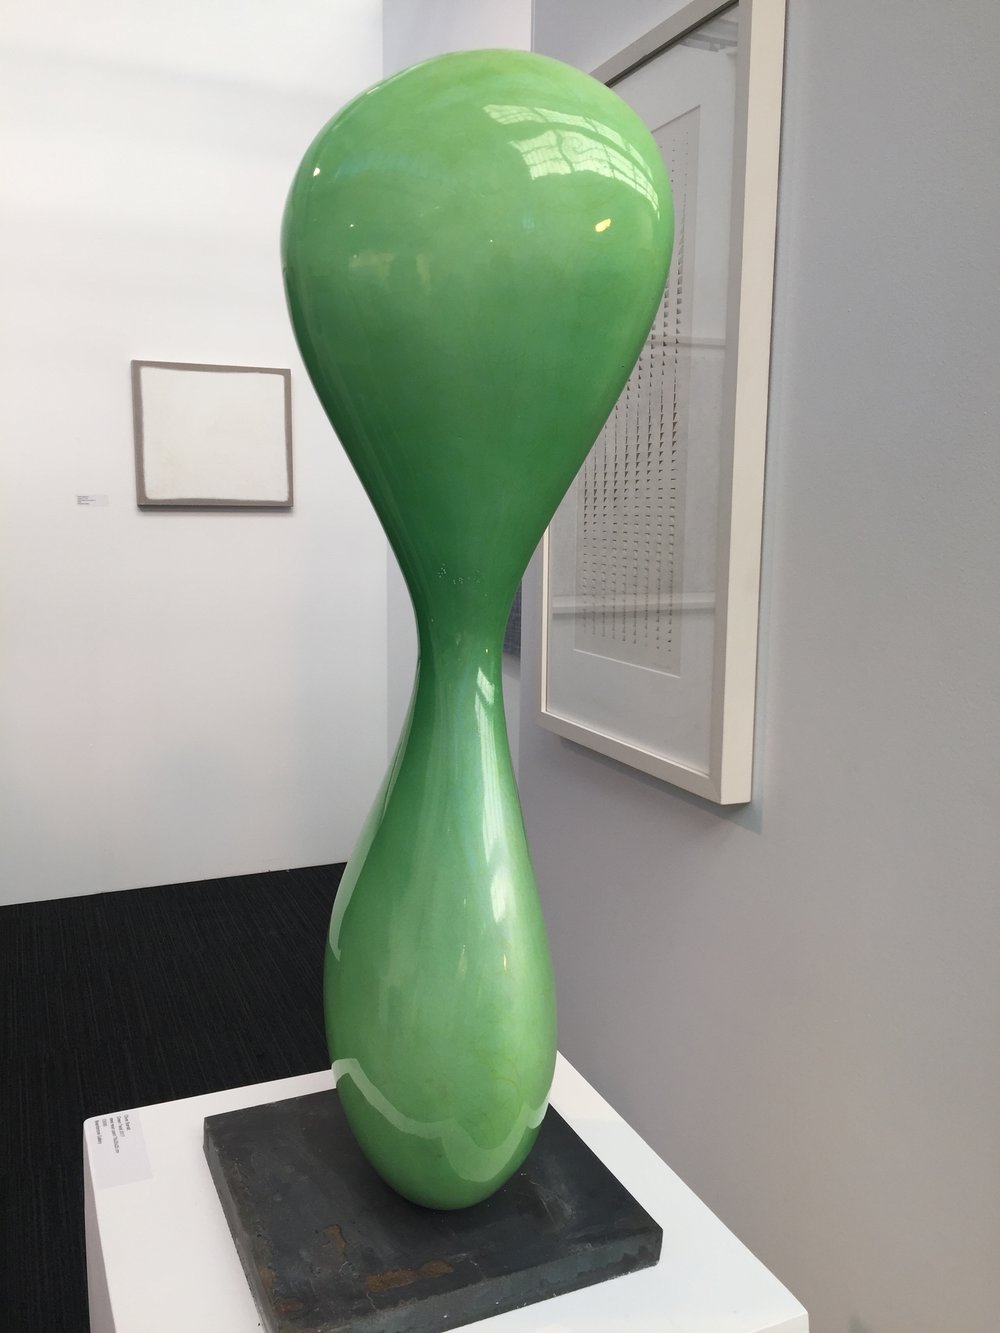 Oliver Barratt's 'Green Twist' @ Beardsmore Gallery.